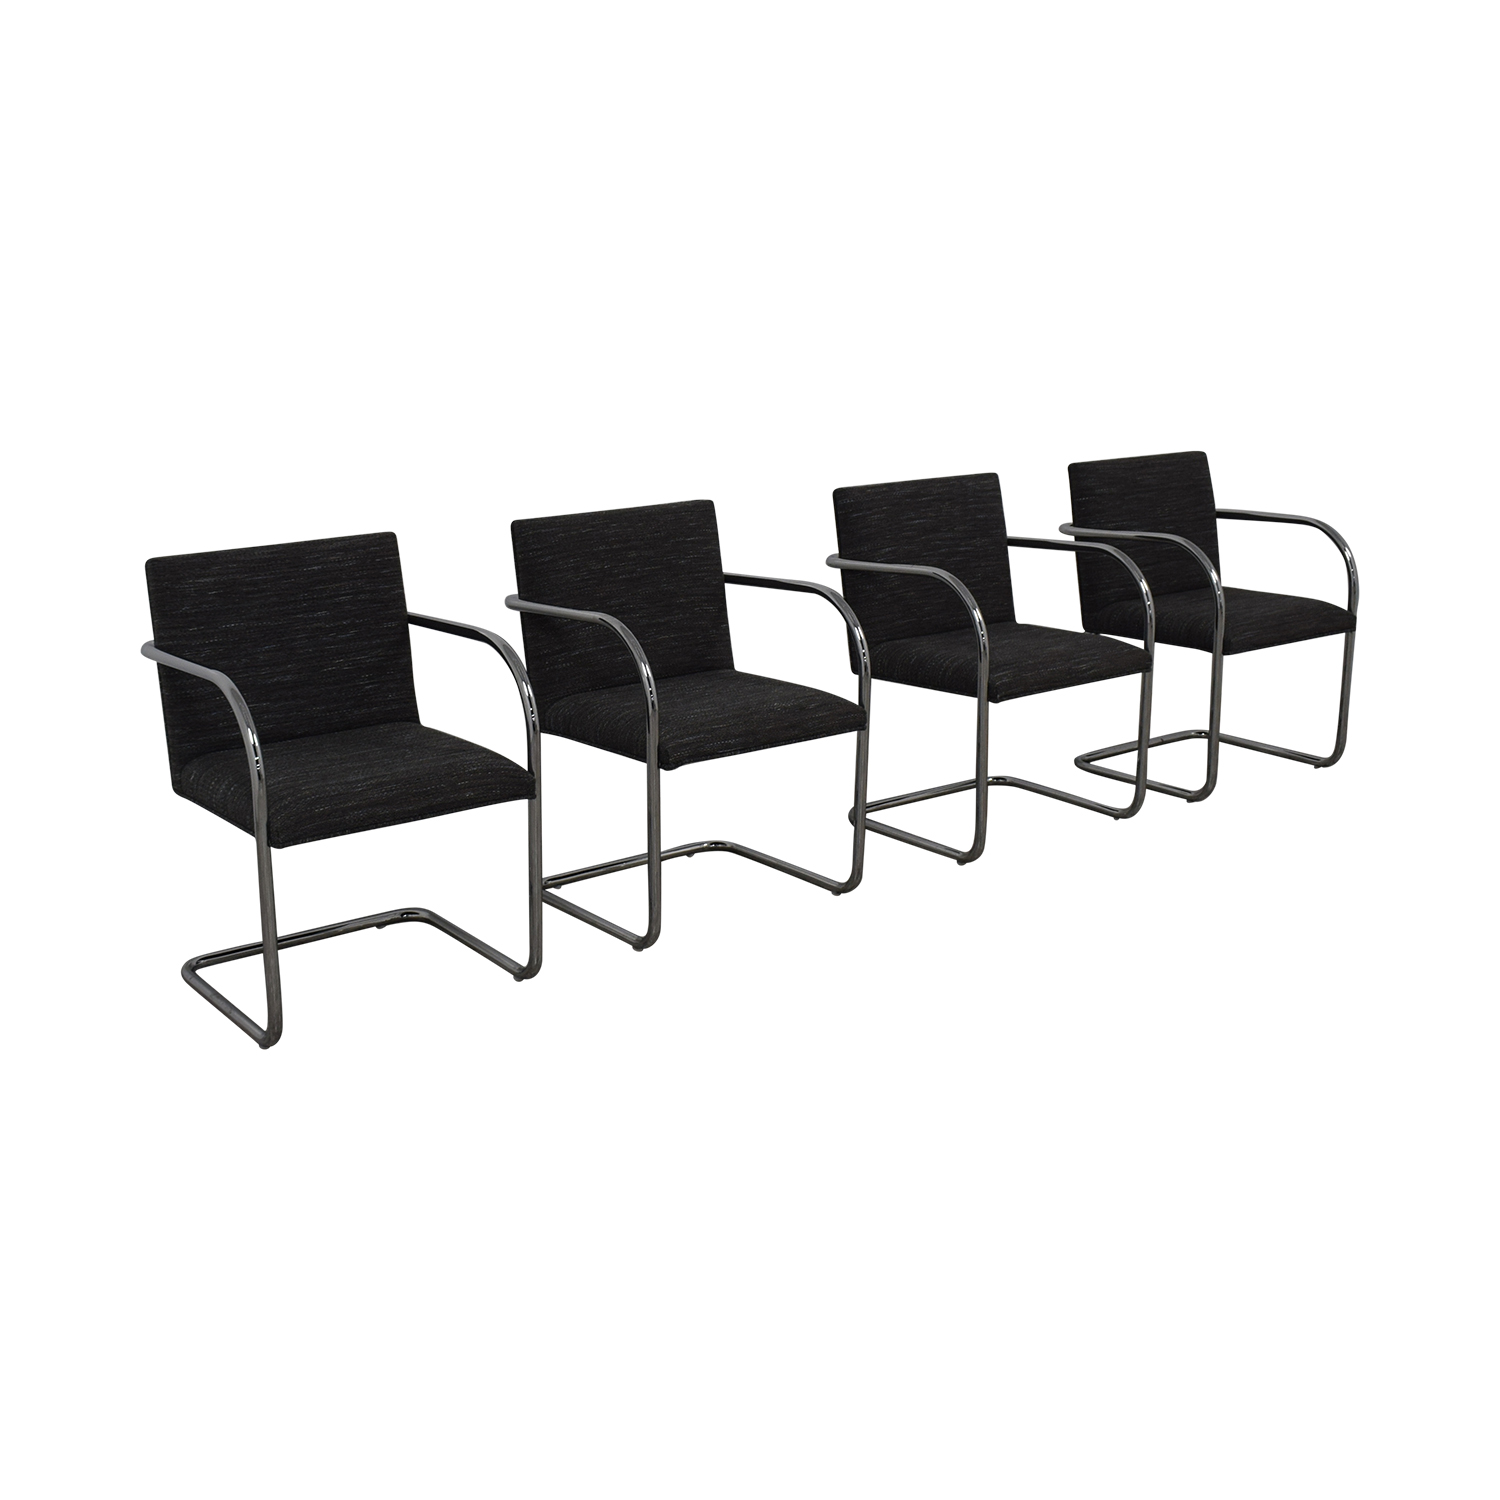 Chrome Upholstered Office Chairs discount